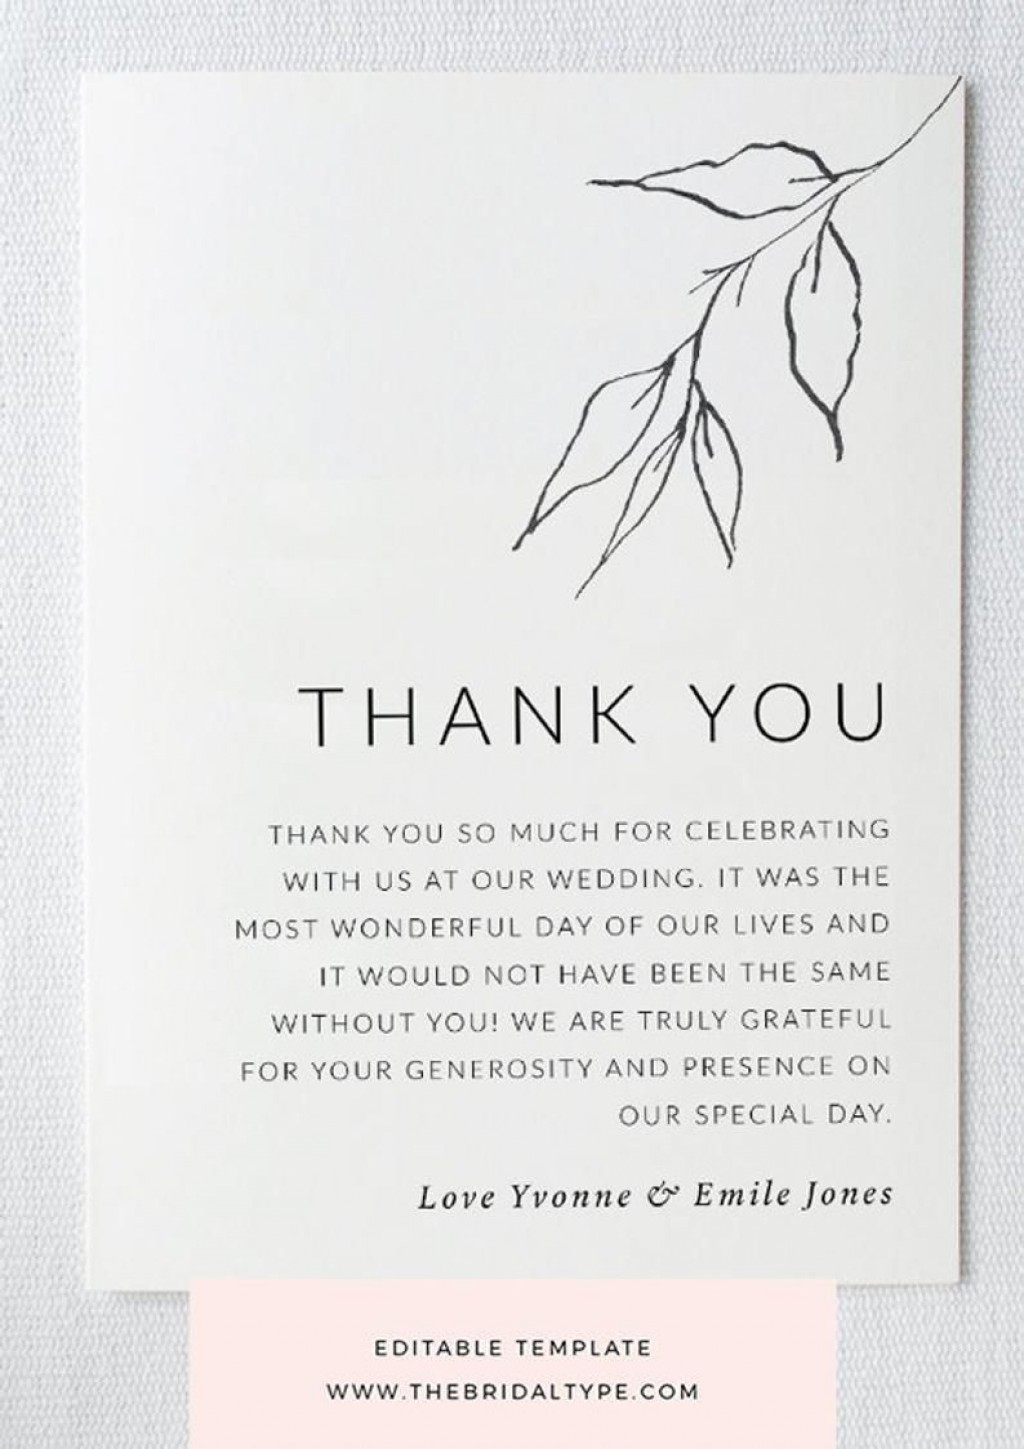 004 Unbelievable Wedding Thank You Card Template High Definition  Message Sample Free Download Wording For MoneyLarge